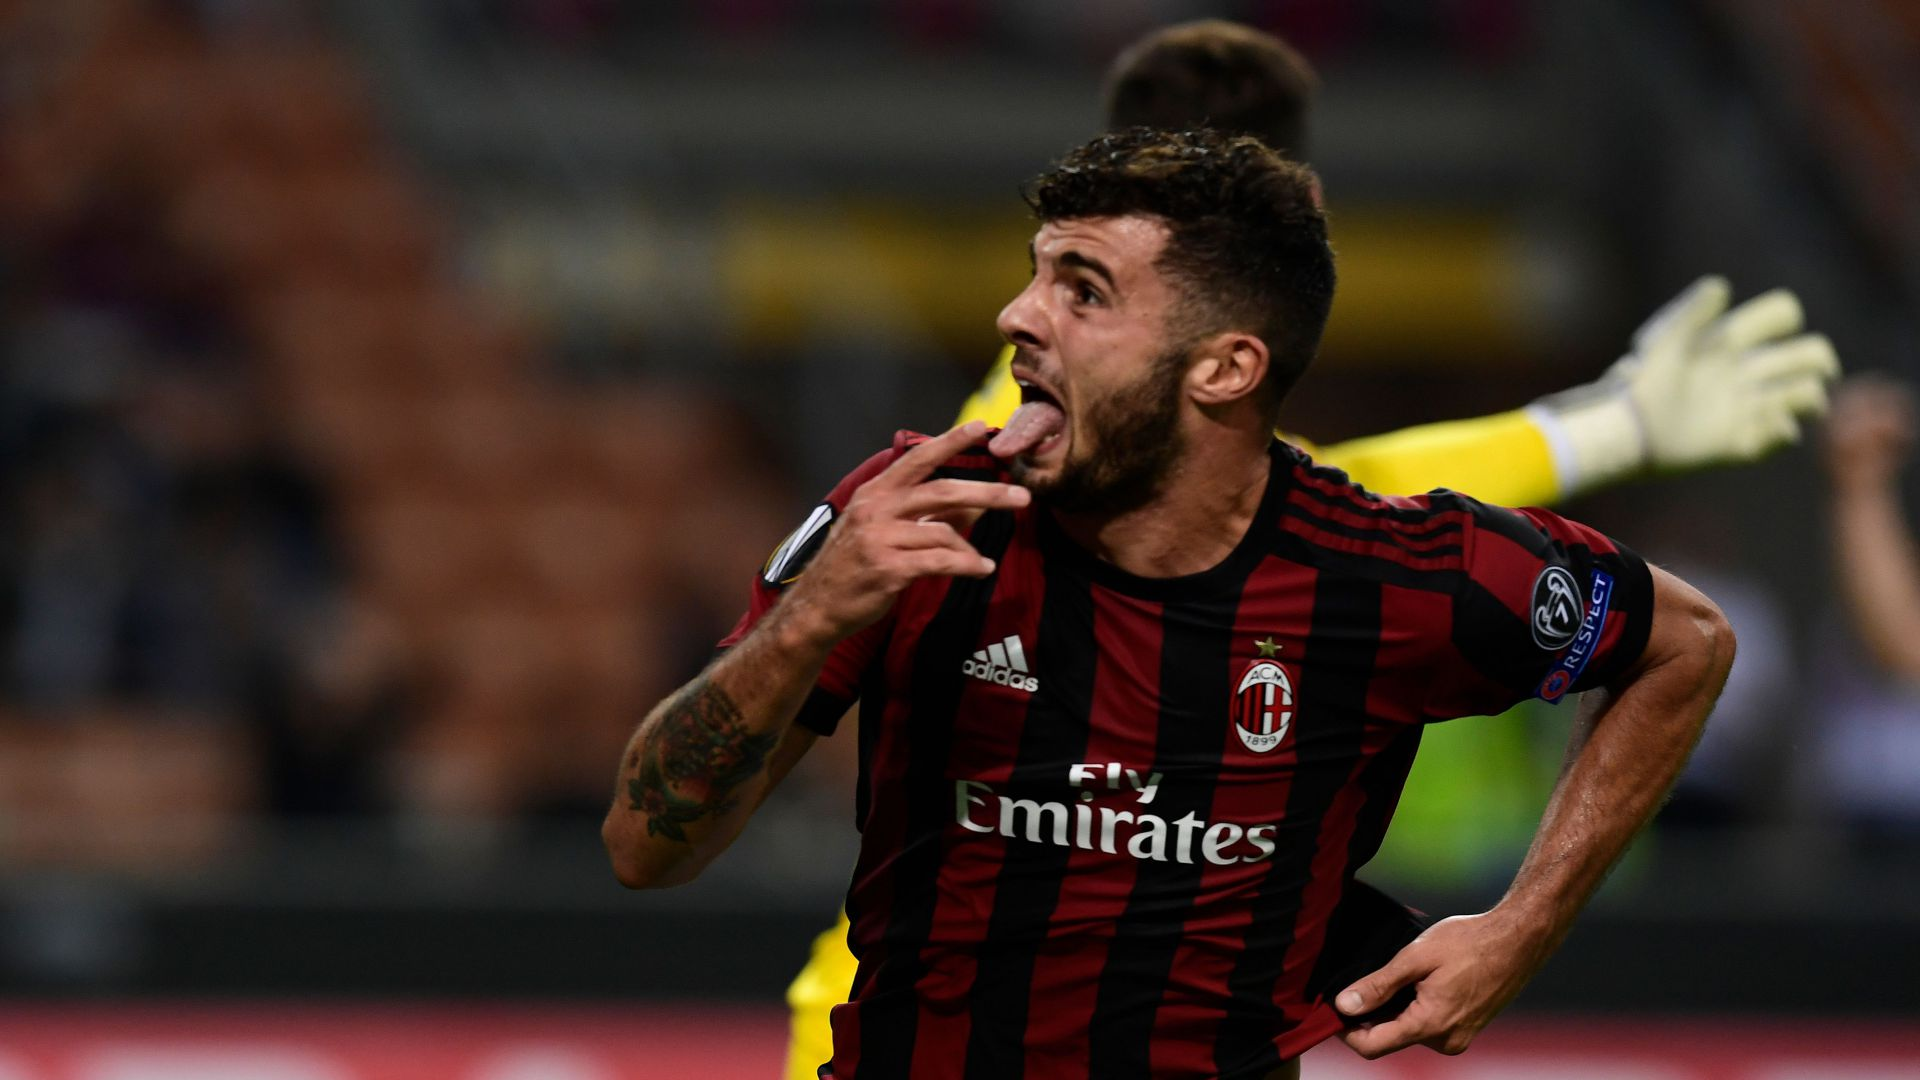 Scommesse Europa League: quote e pronostico di Milan-AEK